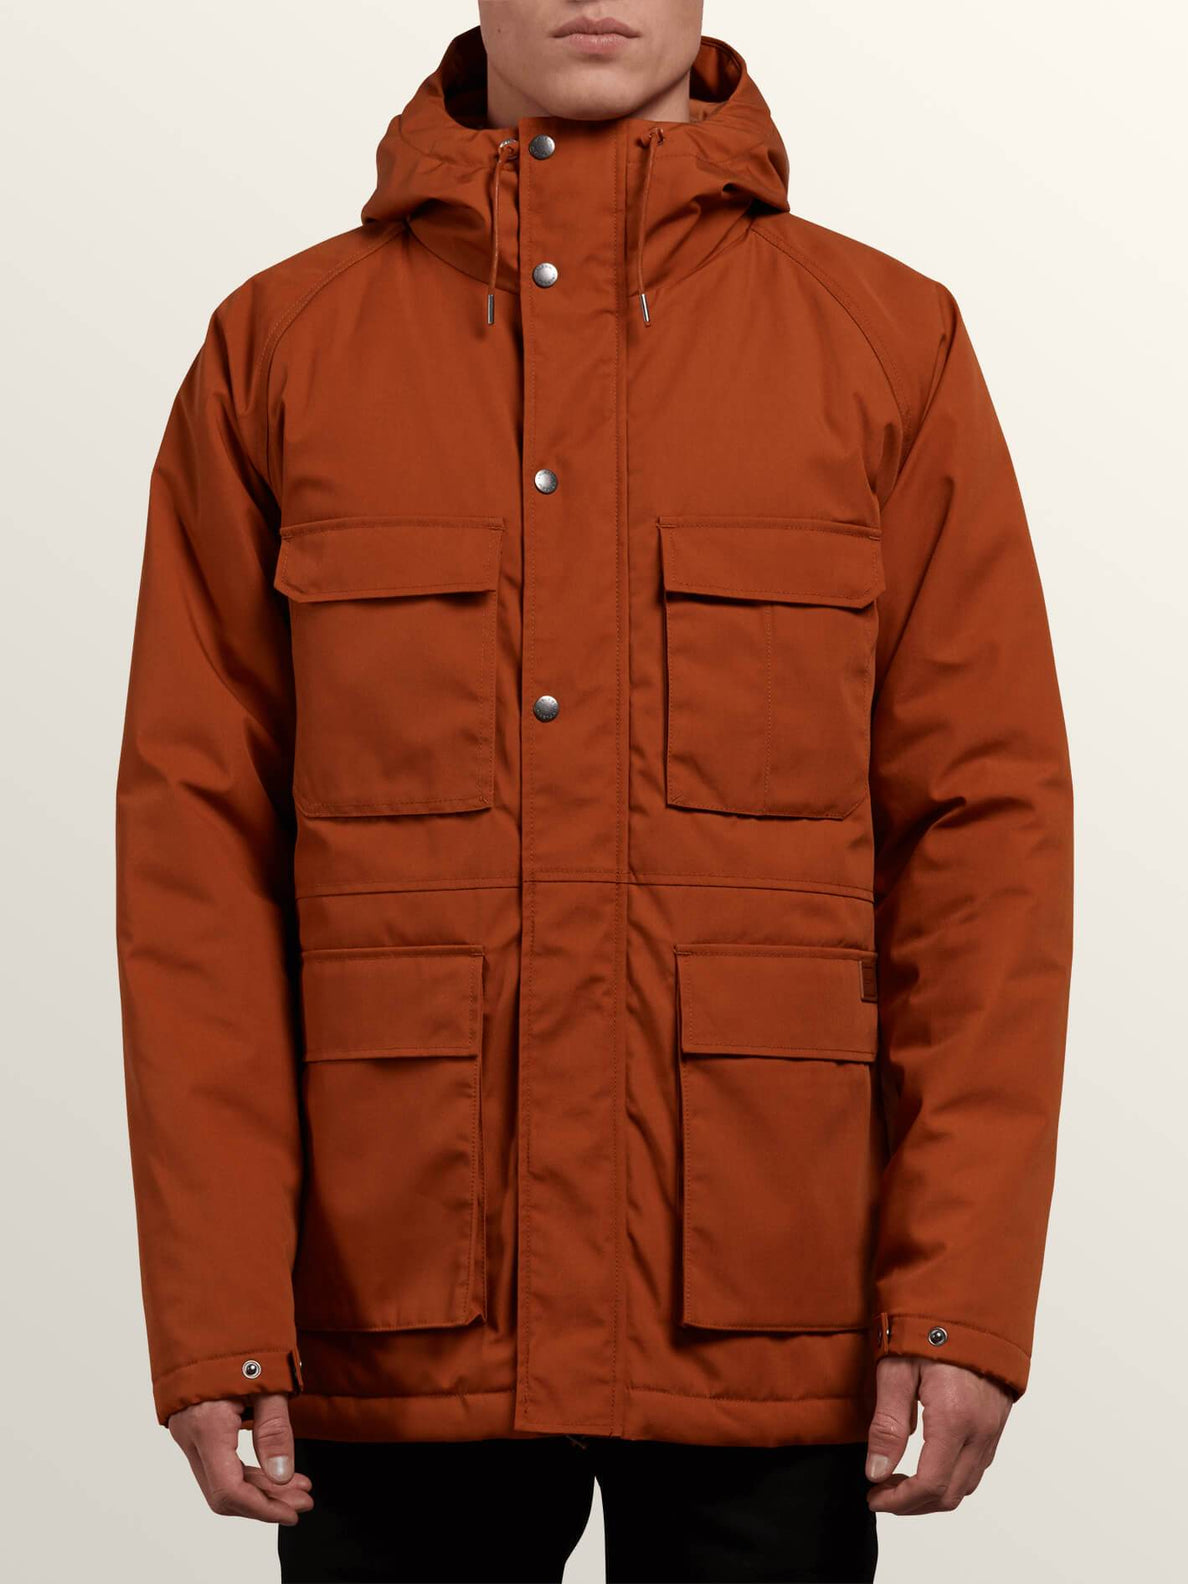 Renton Winter Parka In Hazelnut, Front View